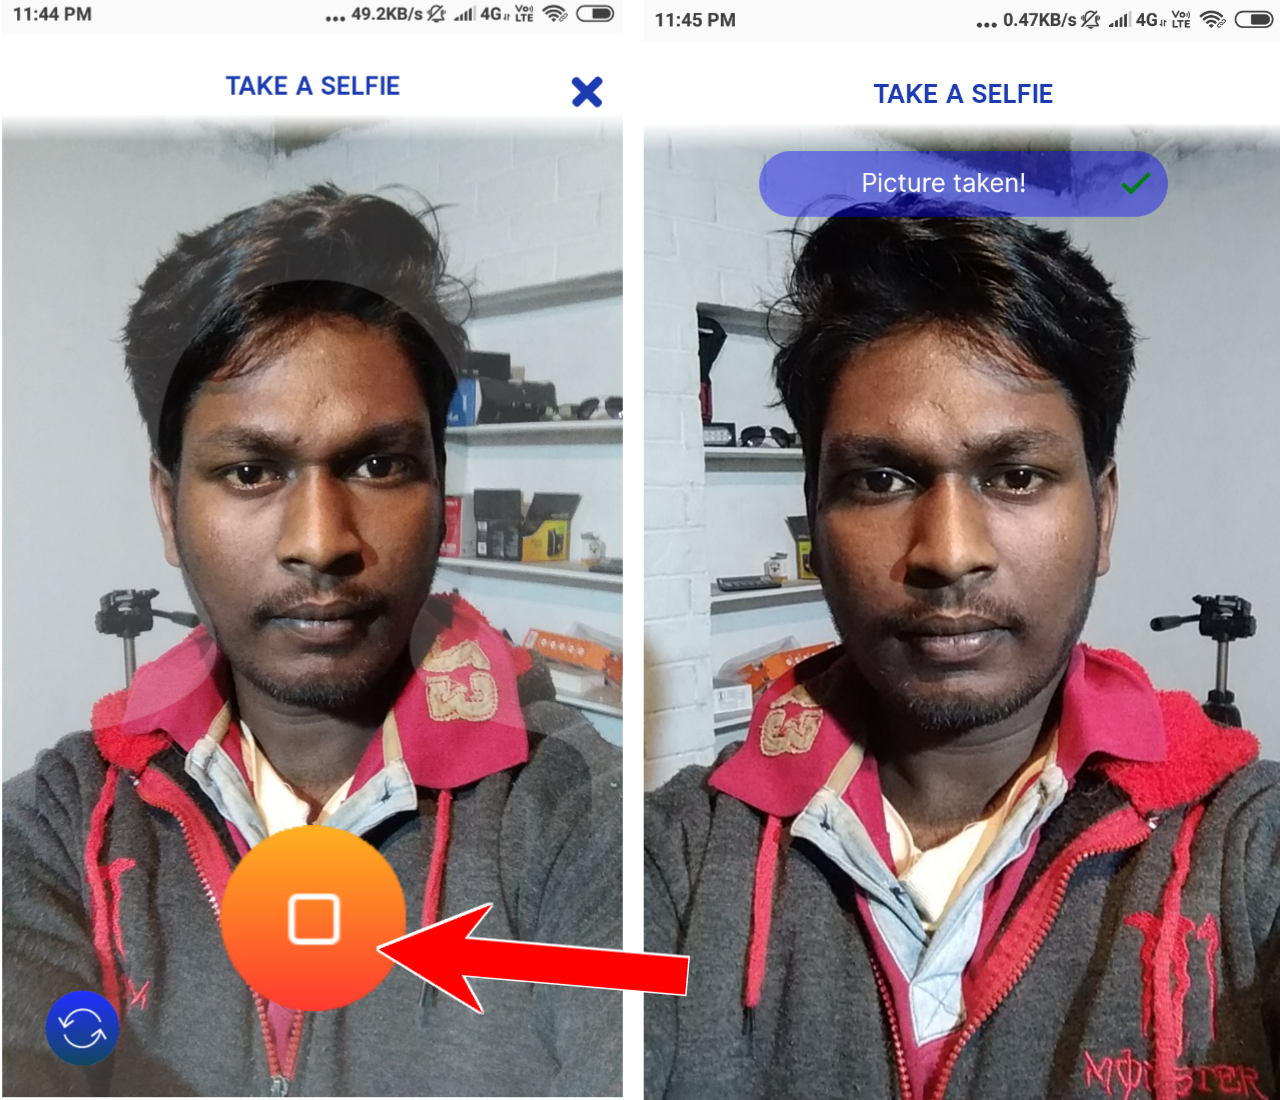 How to create your own face animated gif ? Android Application Morphin - GIFs just go better News Morfin gif maker Morfin gif maker, Morphin application review, Morphin gif application, morphin gif maker  Kannada Tech